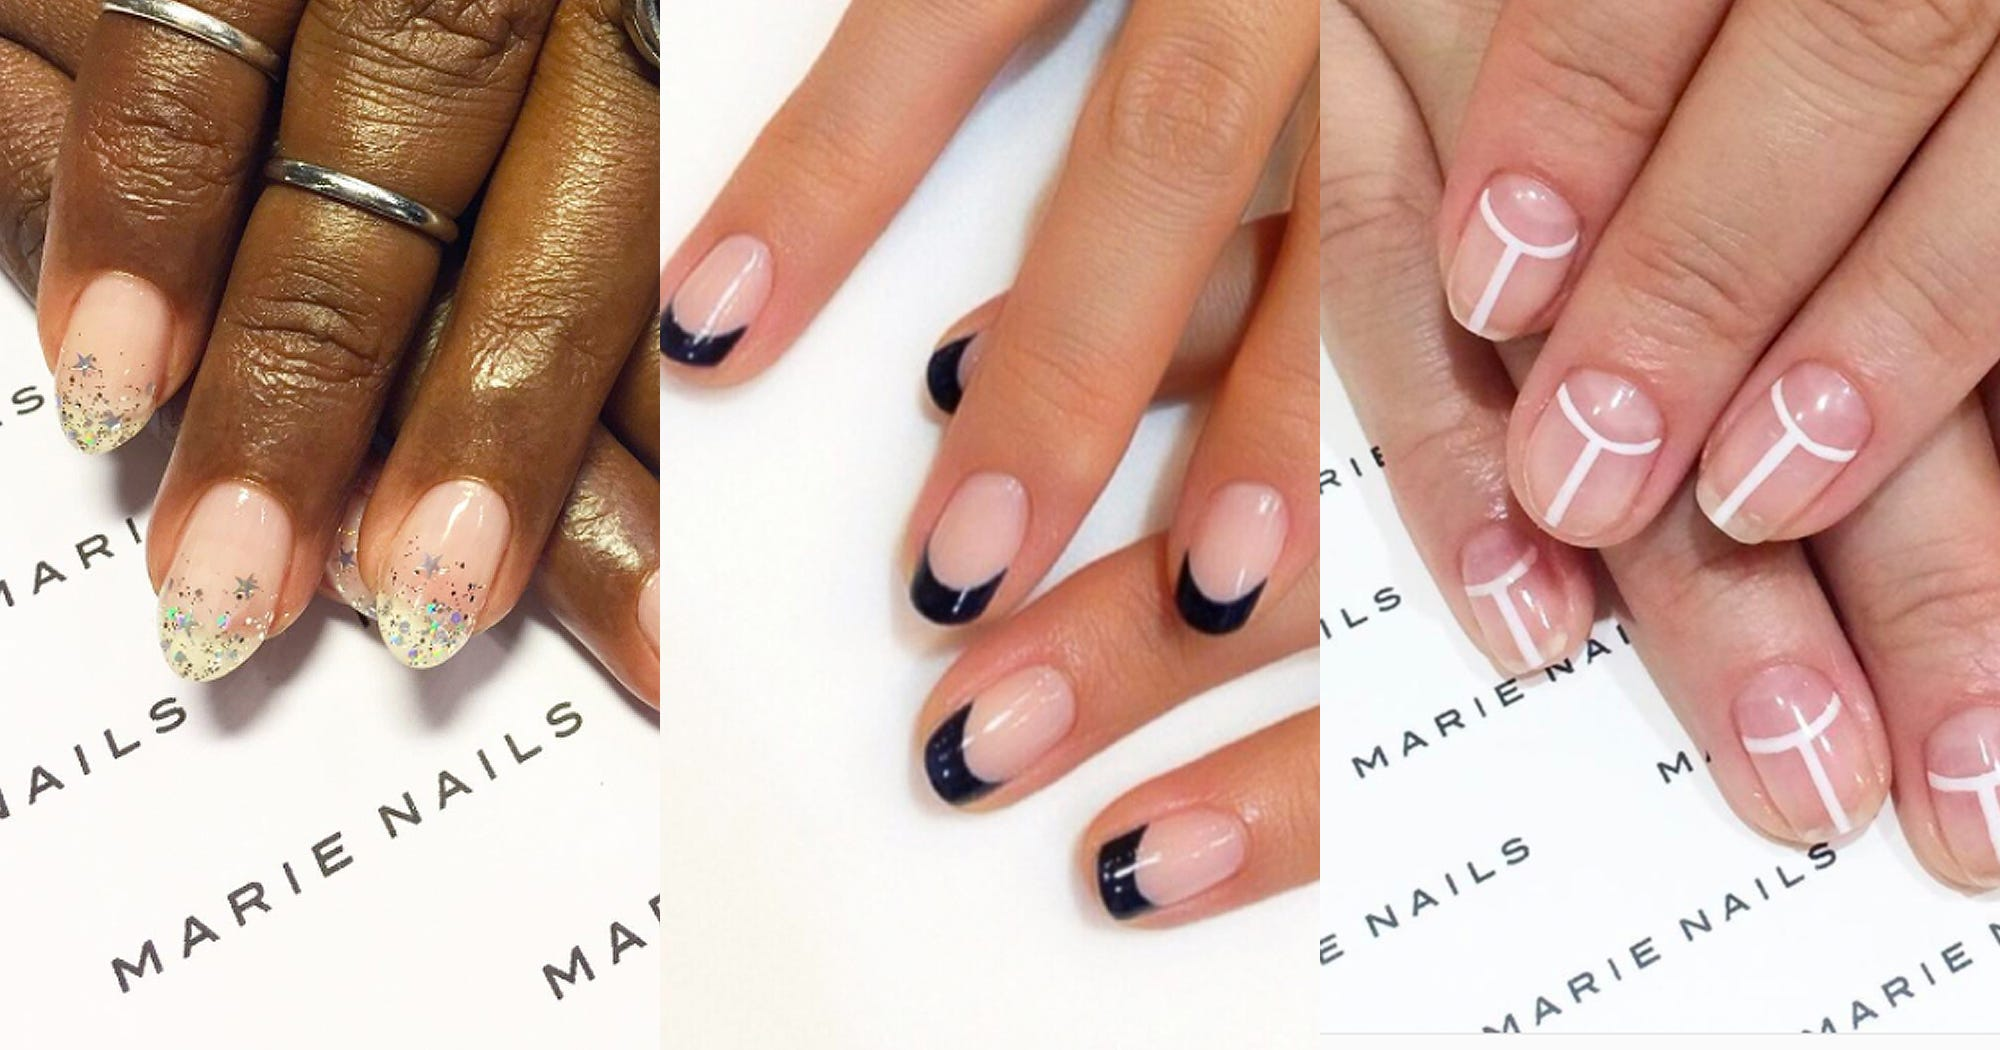 2019 year look- We peter love soms backwards french manicure